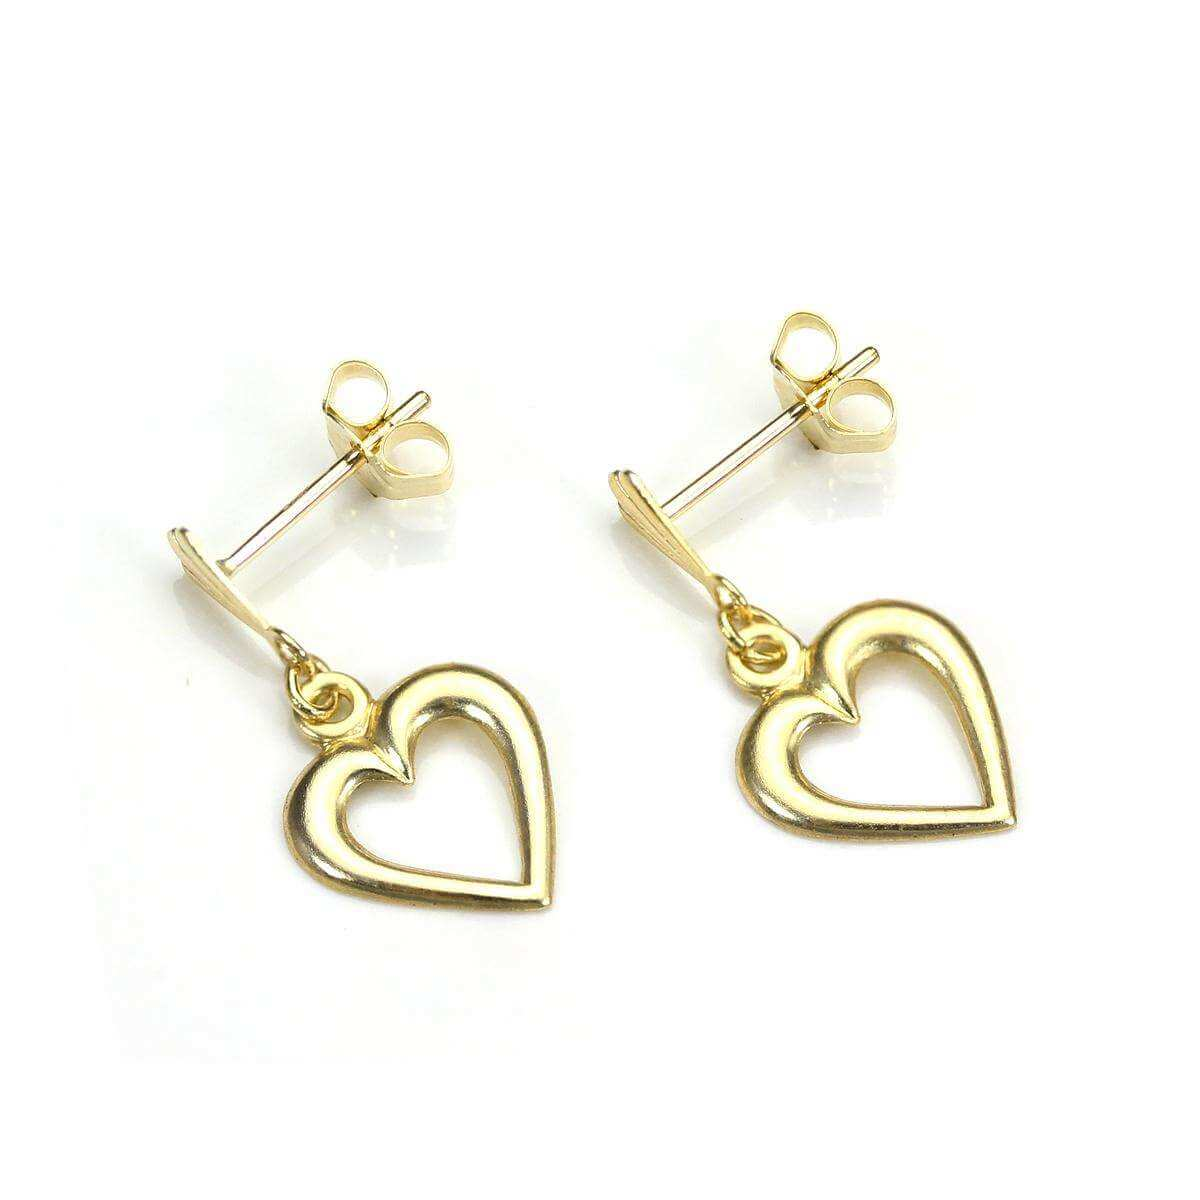 9ct Gold Open Heart Drop Earring Studs